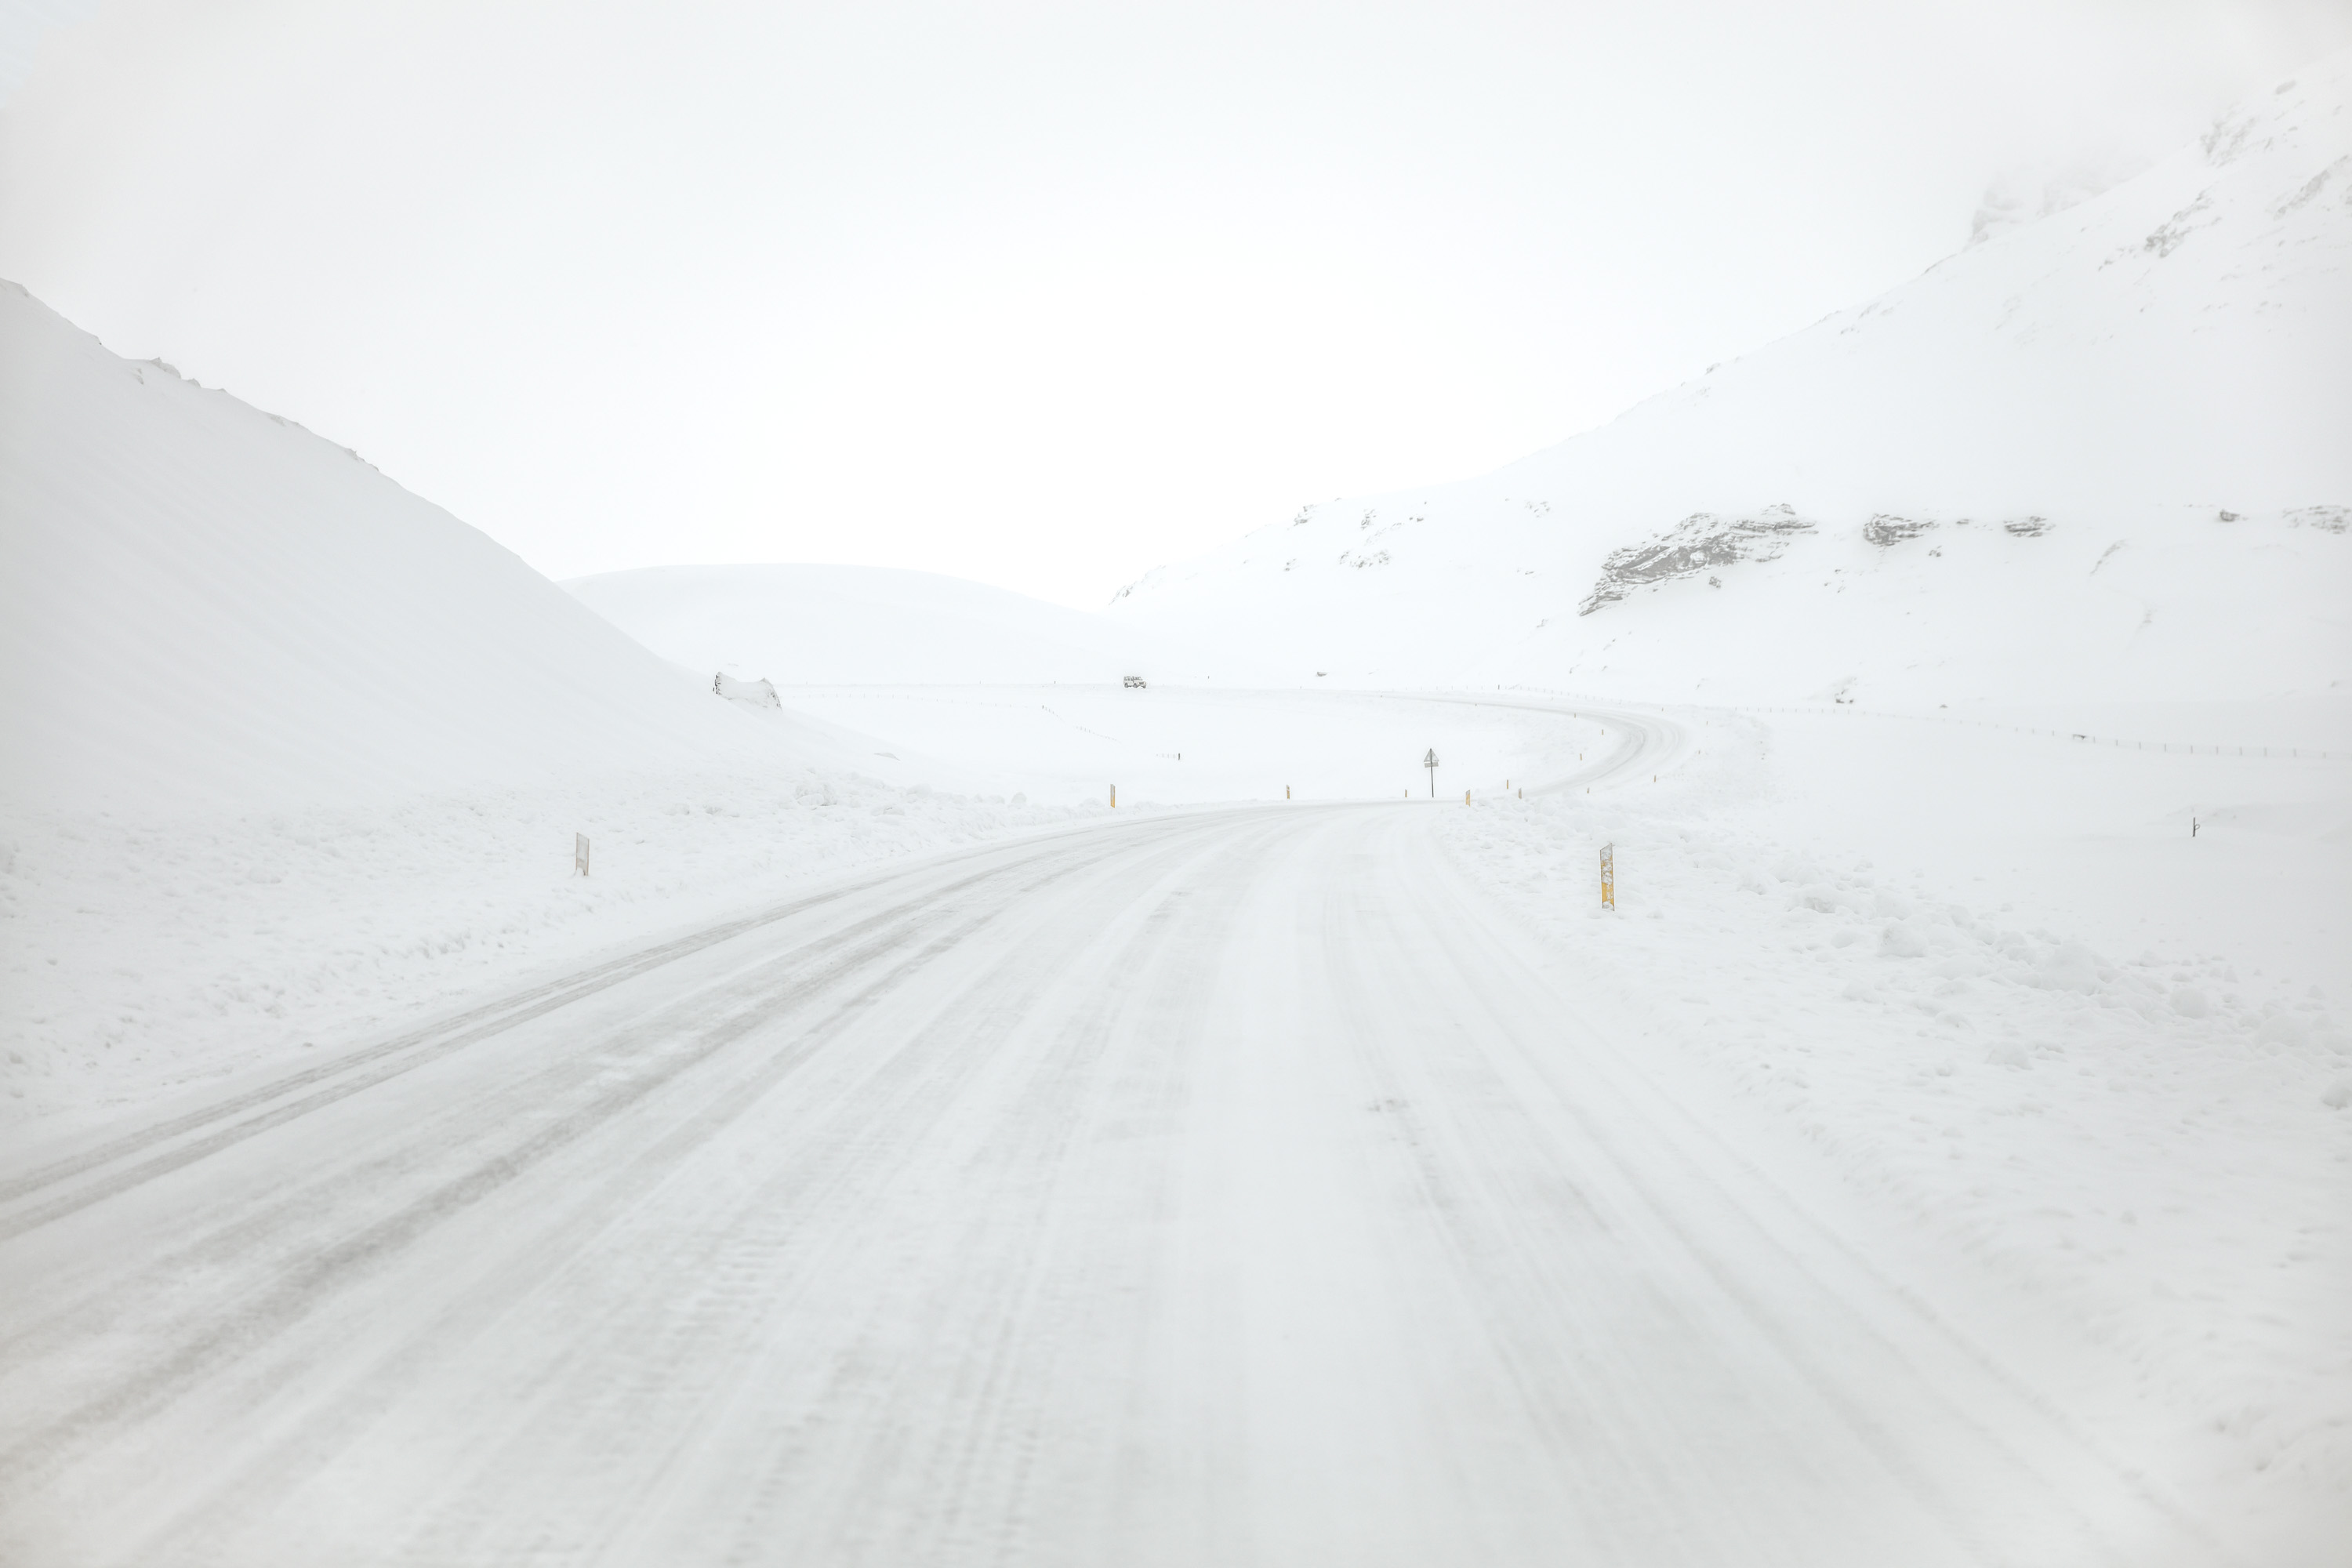 ICELAND-RING-ROAD-WINTER